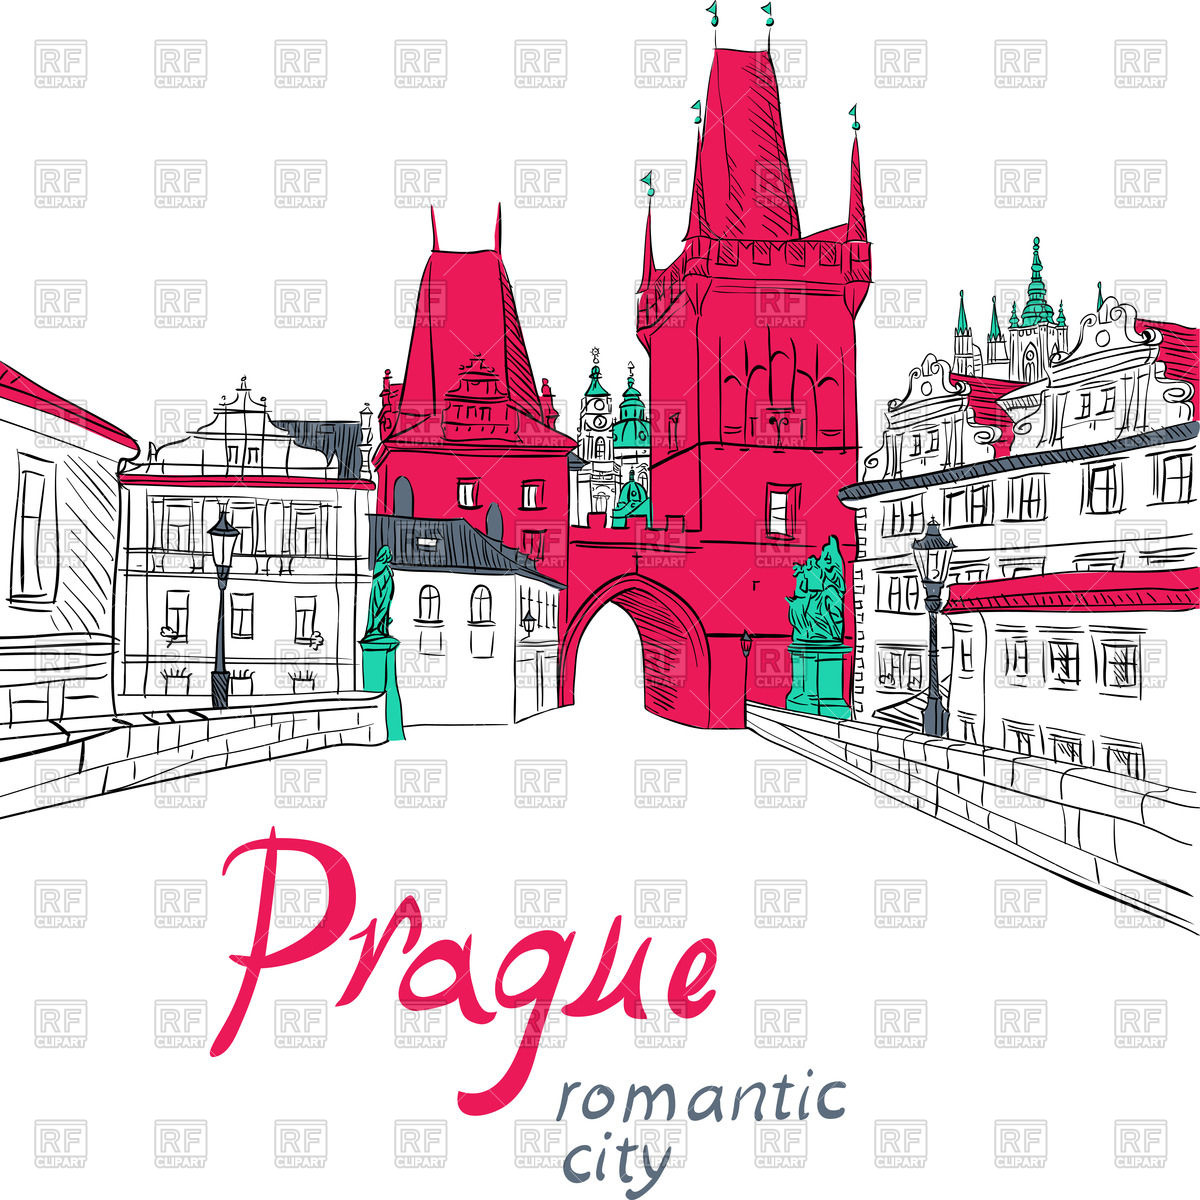 Cityscape with Charles Bridge in Prague Vector Image #46982.